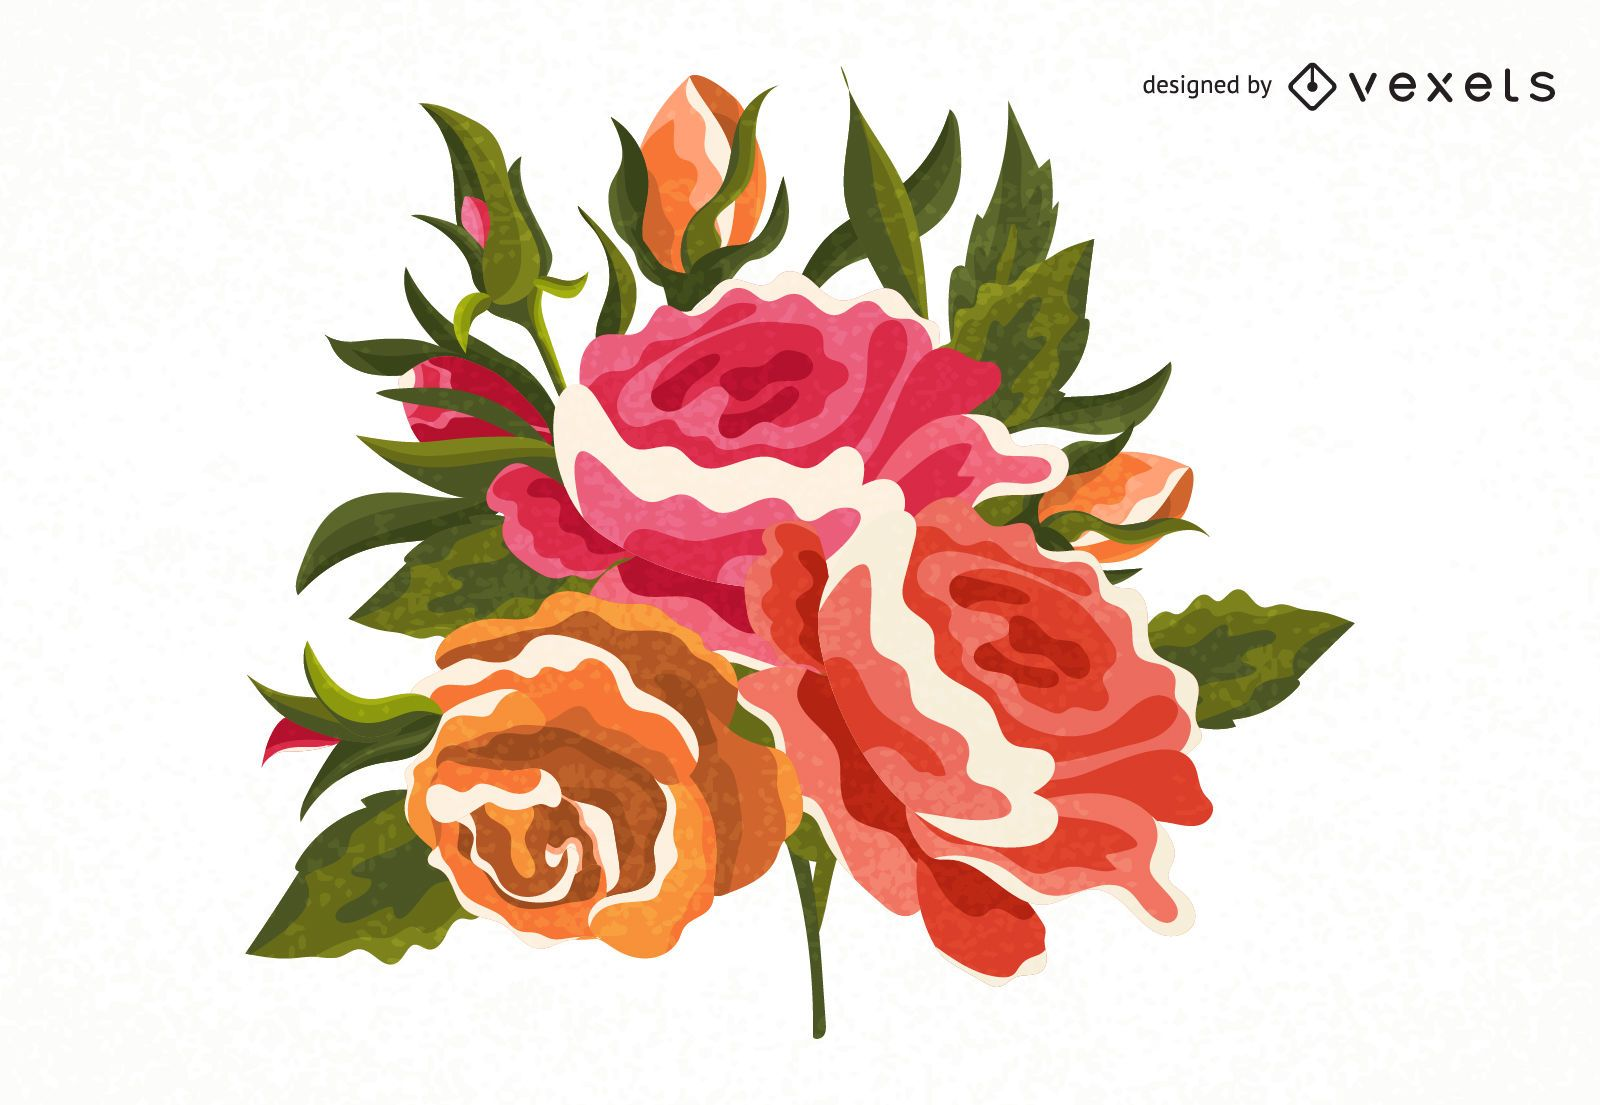 Hand painted rose illustration